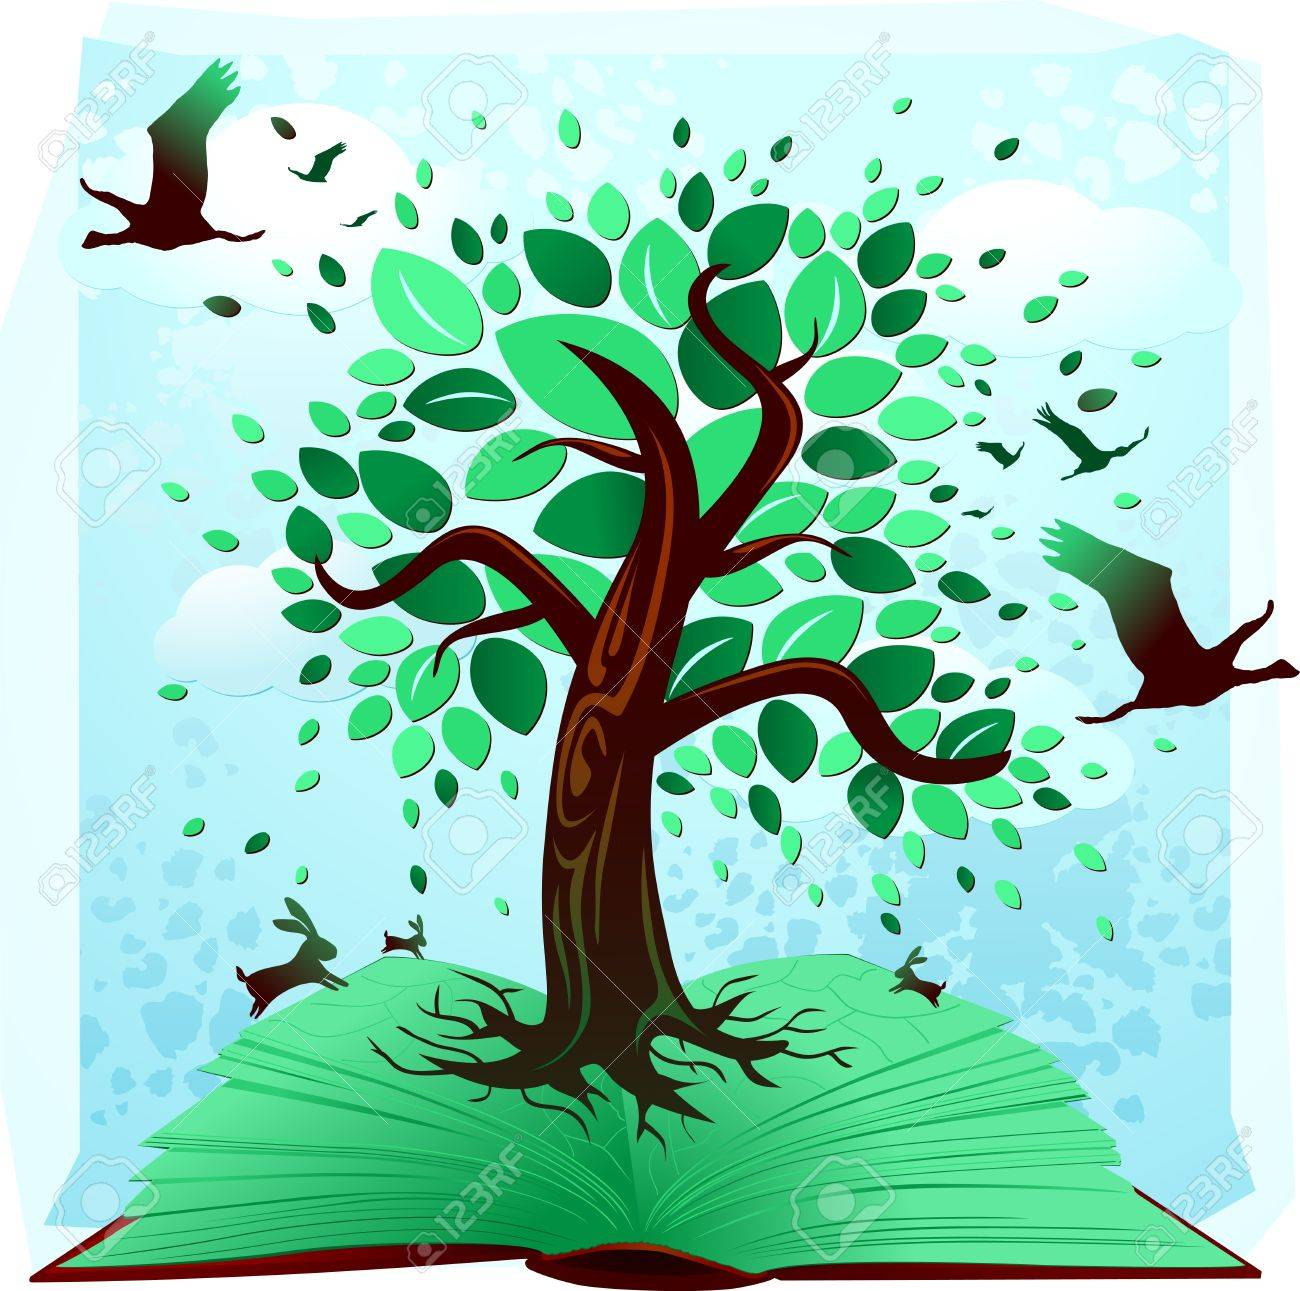 The book of environment - 9993904